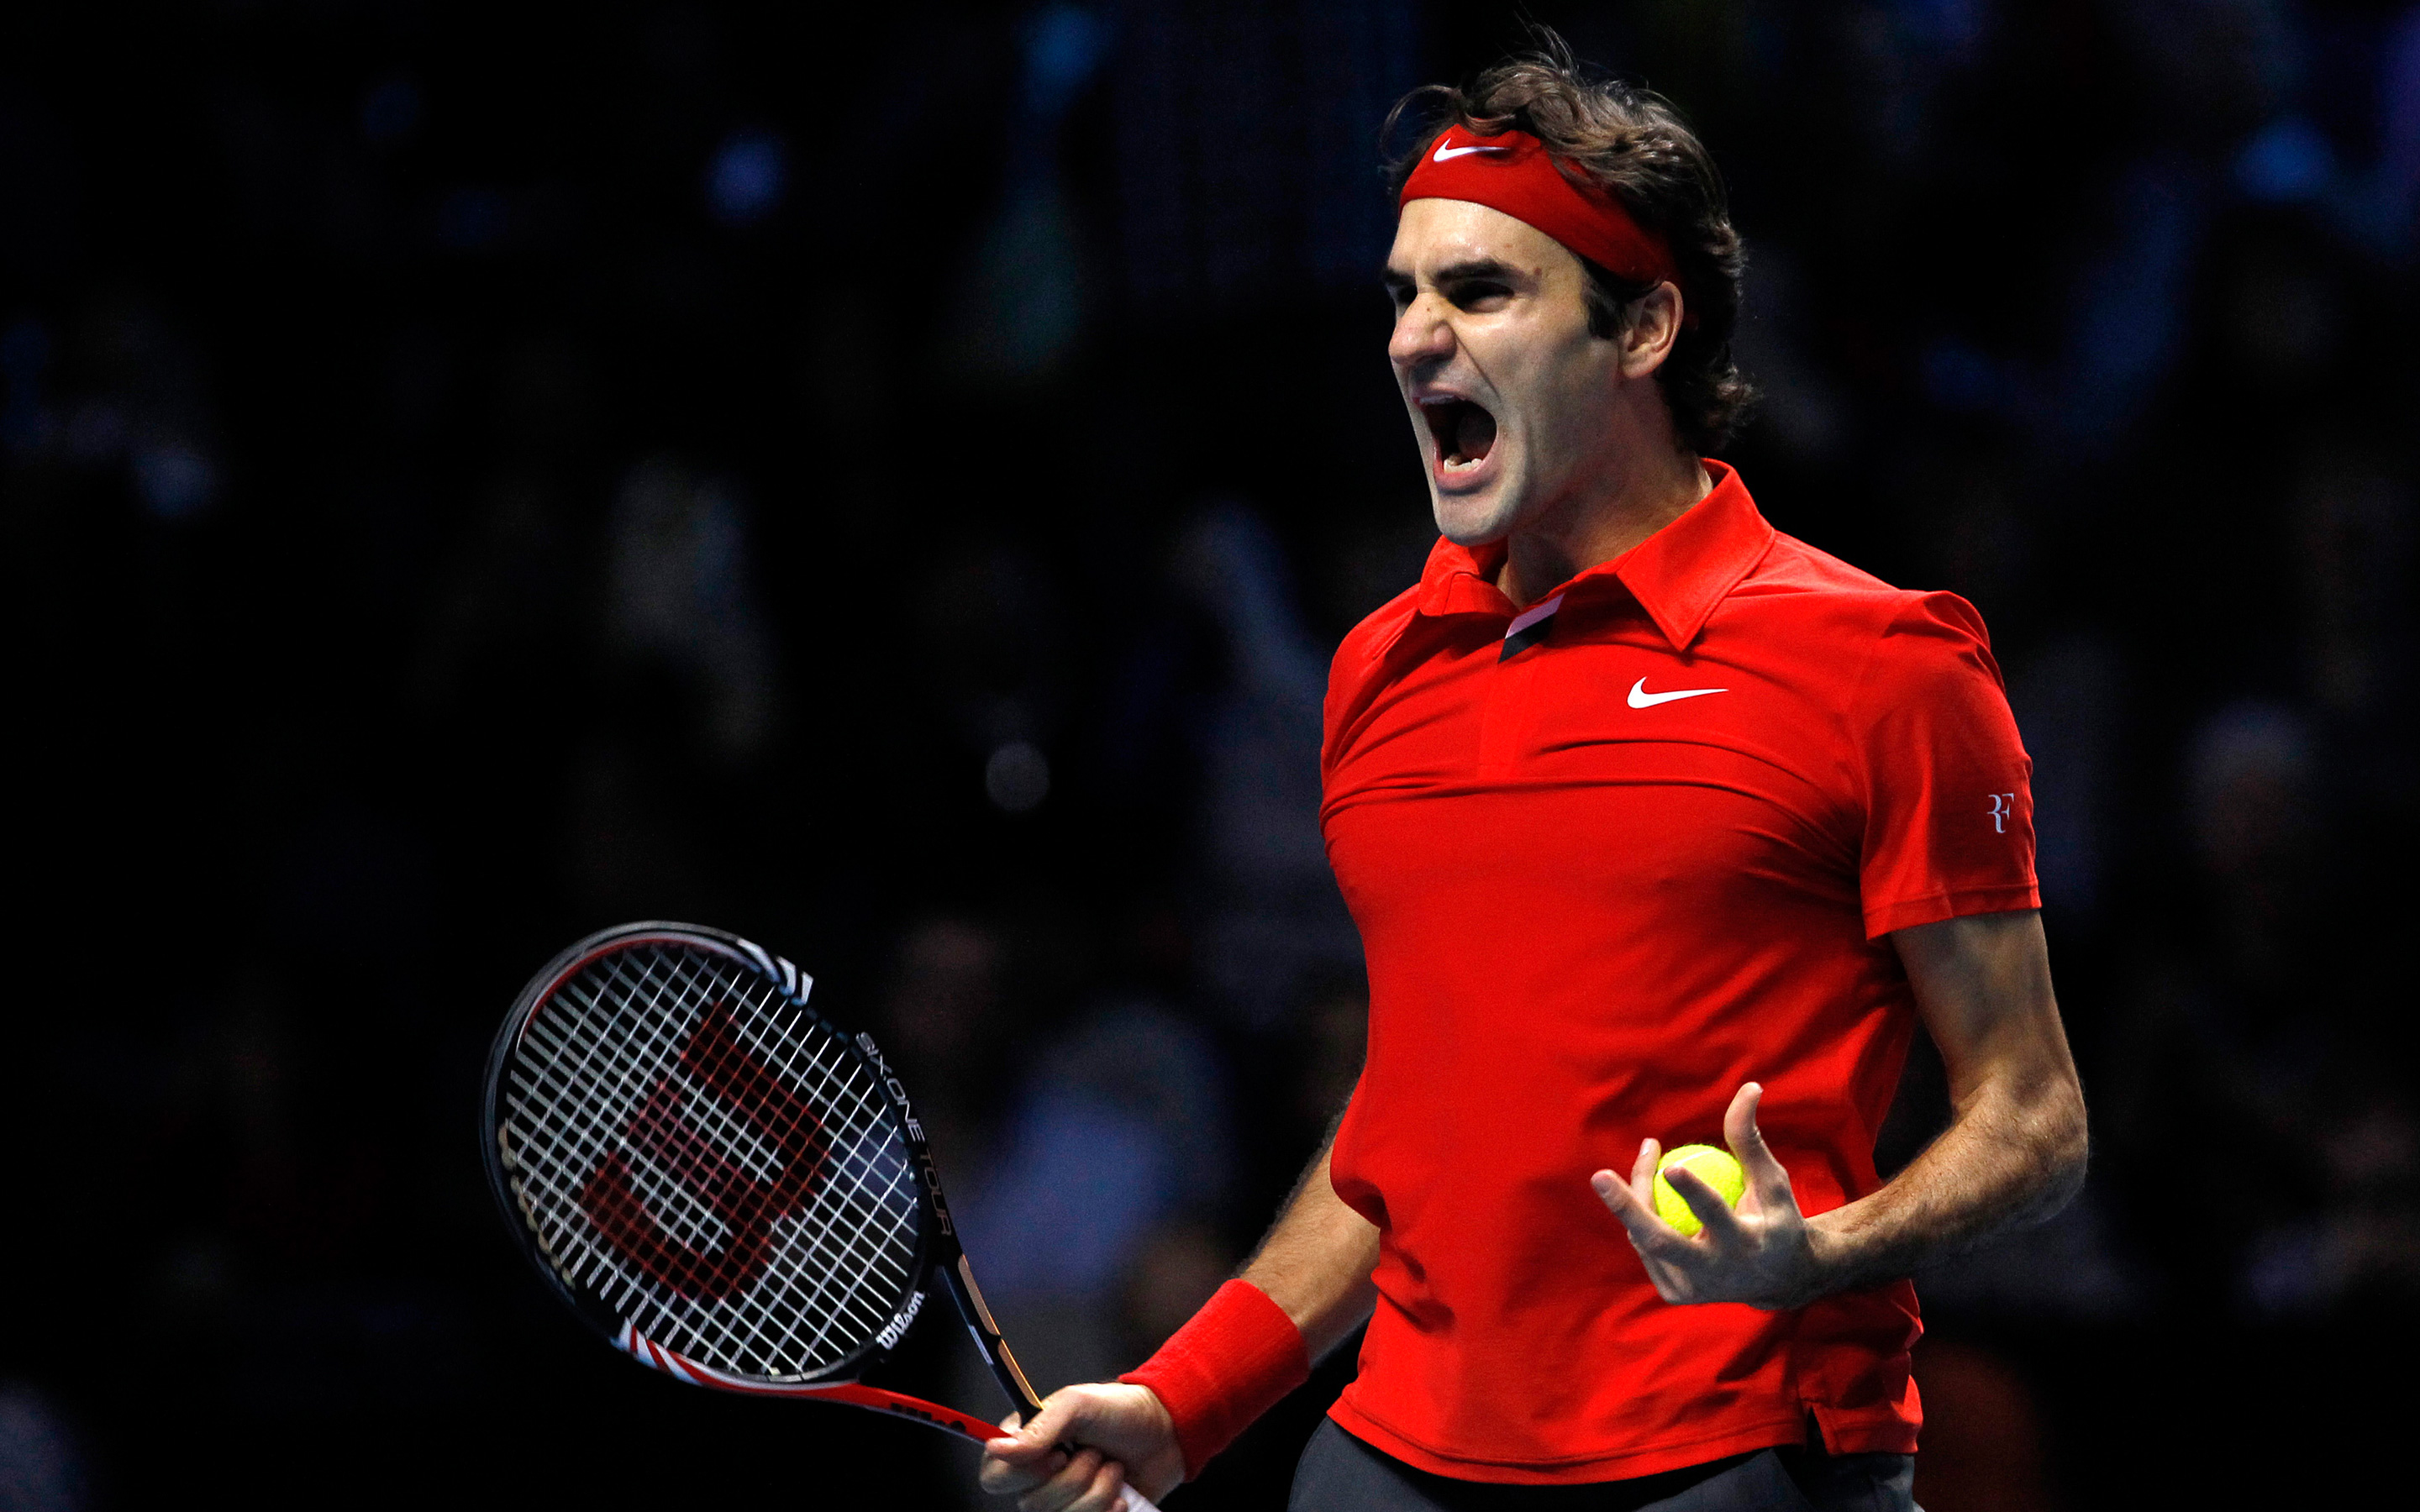 Roger Federer Wallpapers Desktop 2880x1800 px   4USkY 2880x1800